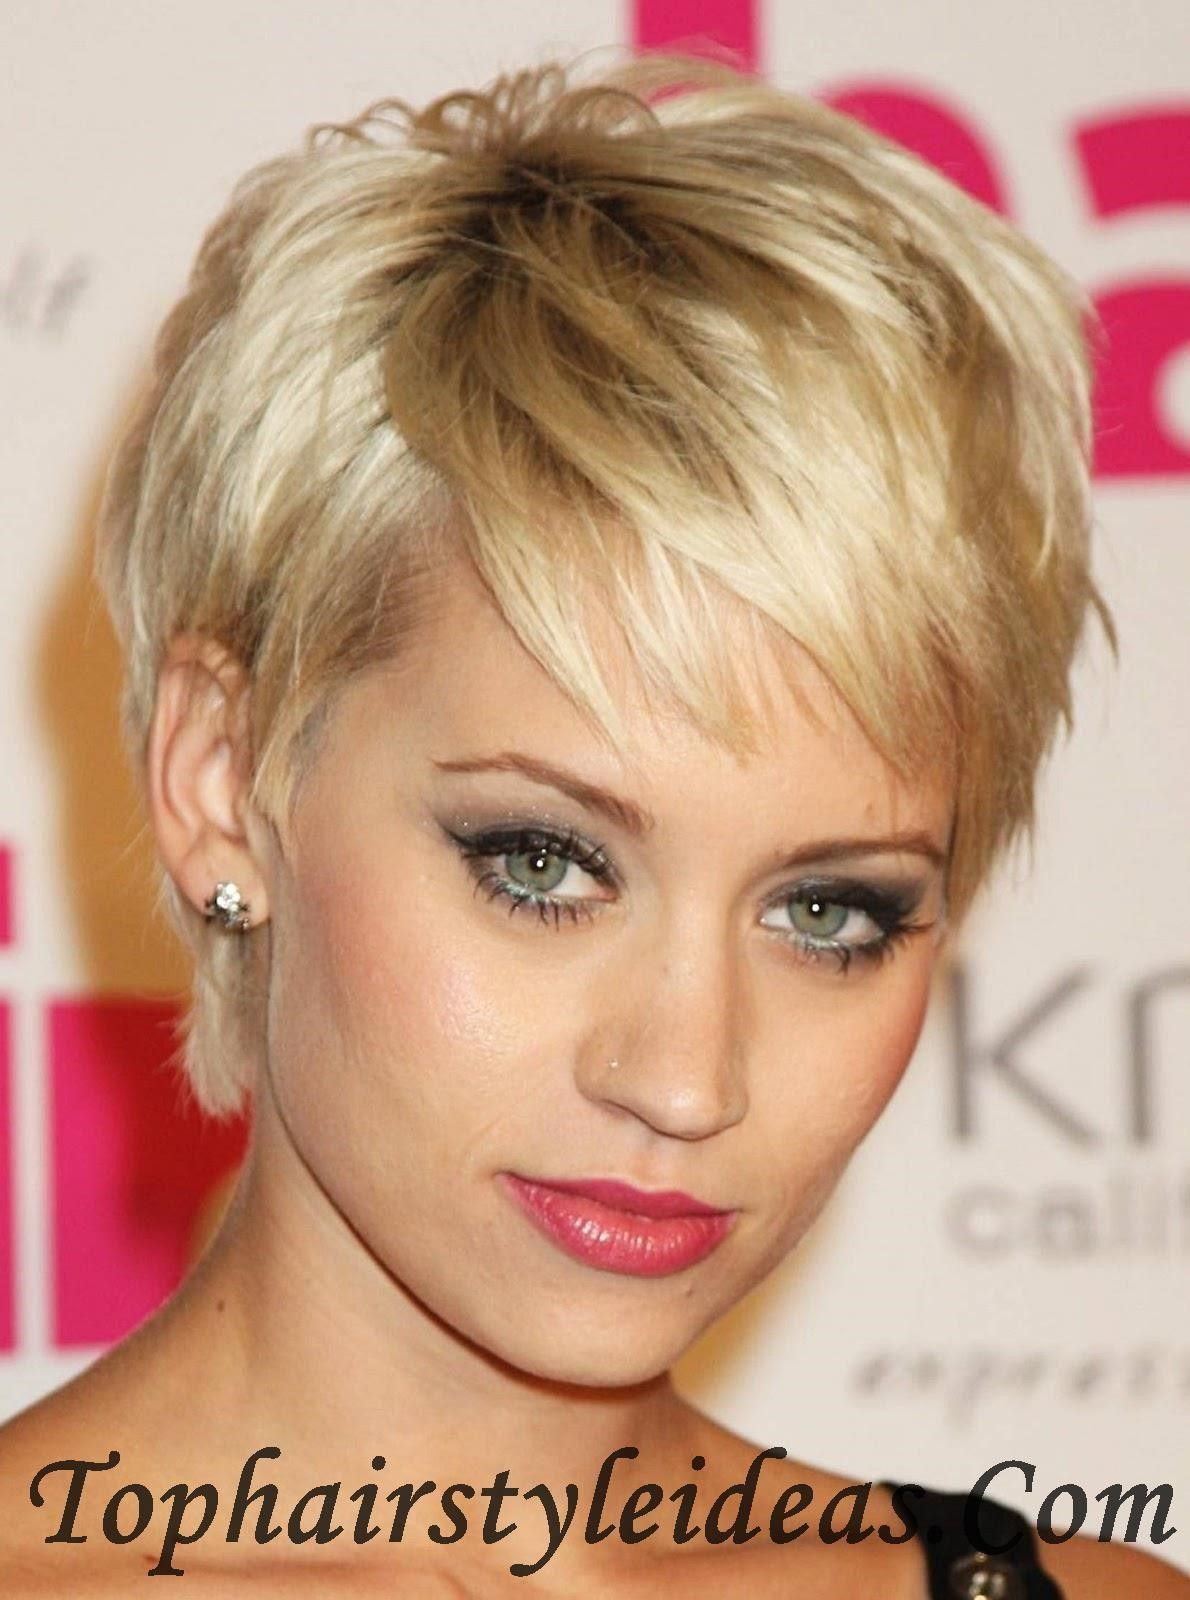 different celebrity hairstyles for women you can try | women